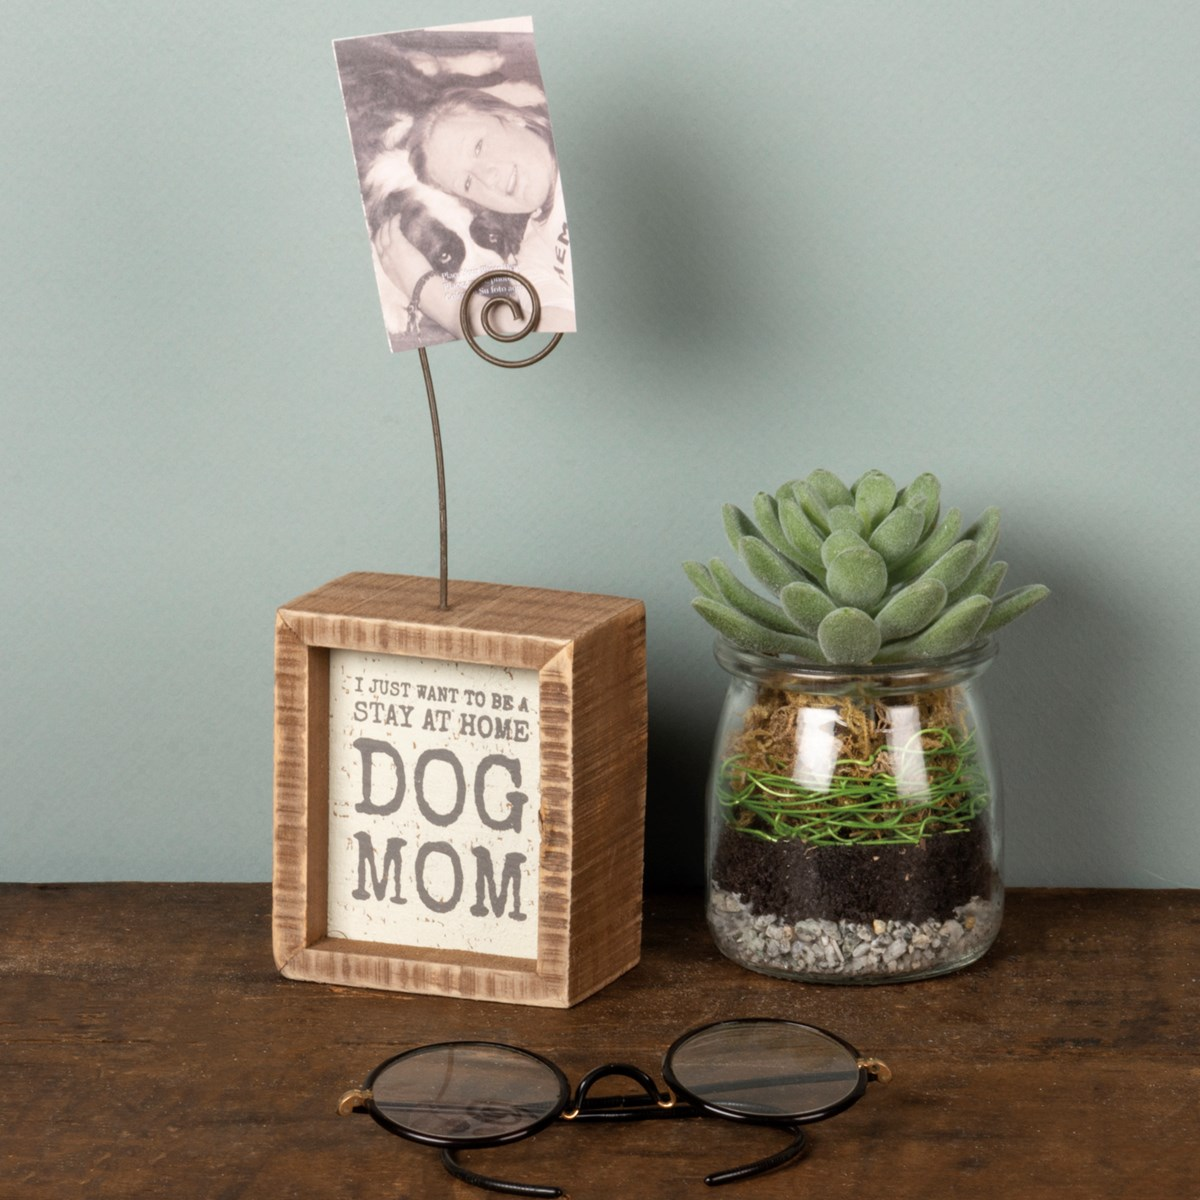 "Inset Photo Block - Be A Stay At Home Dog Mom - 3"" x 3.50"" x 1.50"", Plus Wire - Wood, Wire"